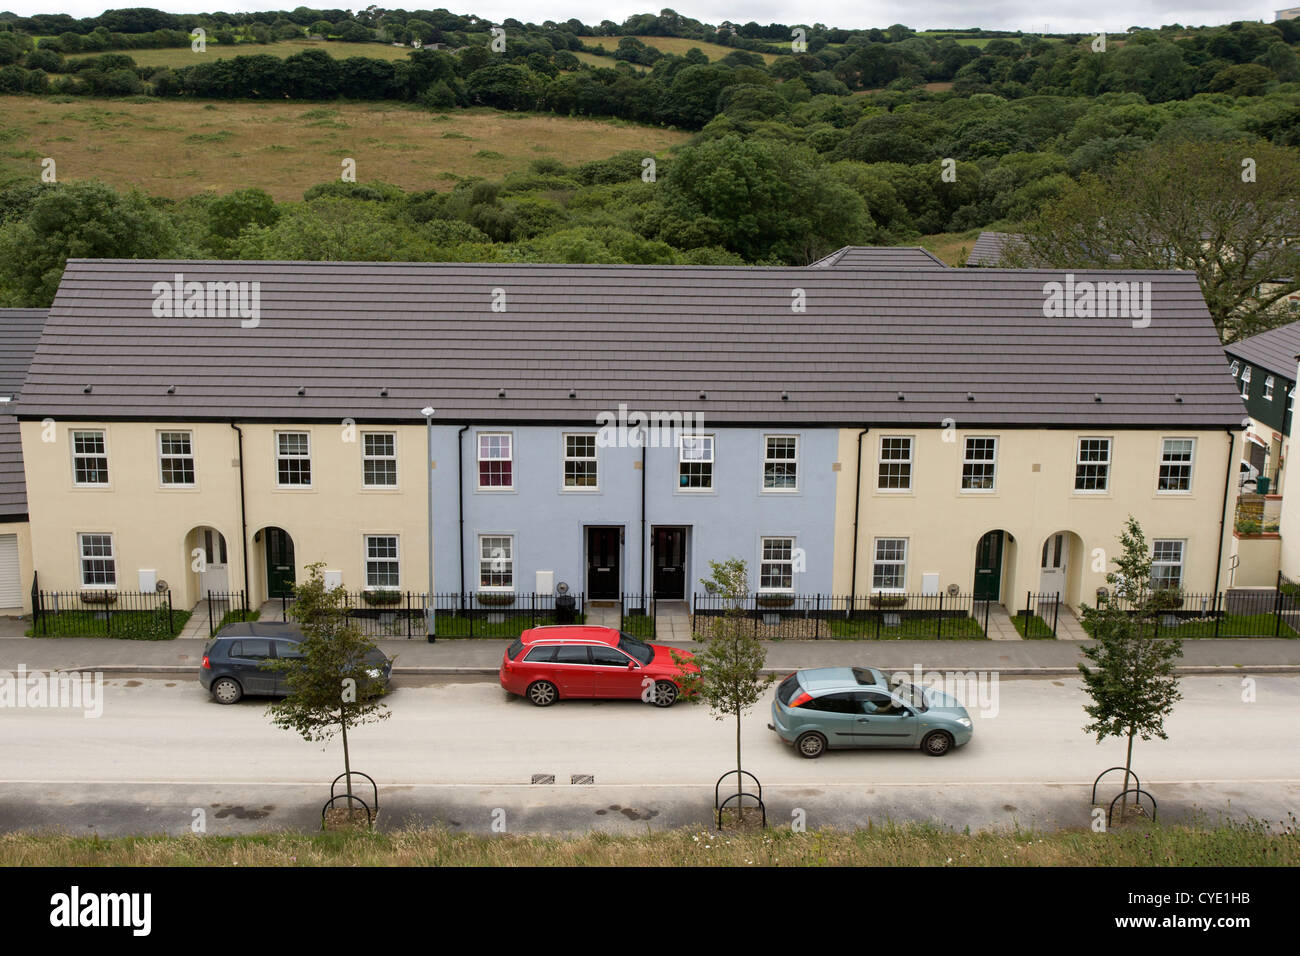 A row of modern terraced houses built on the edge of Truro city with countryside beyond. - Stock Image